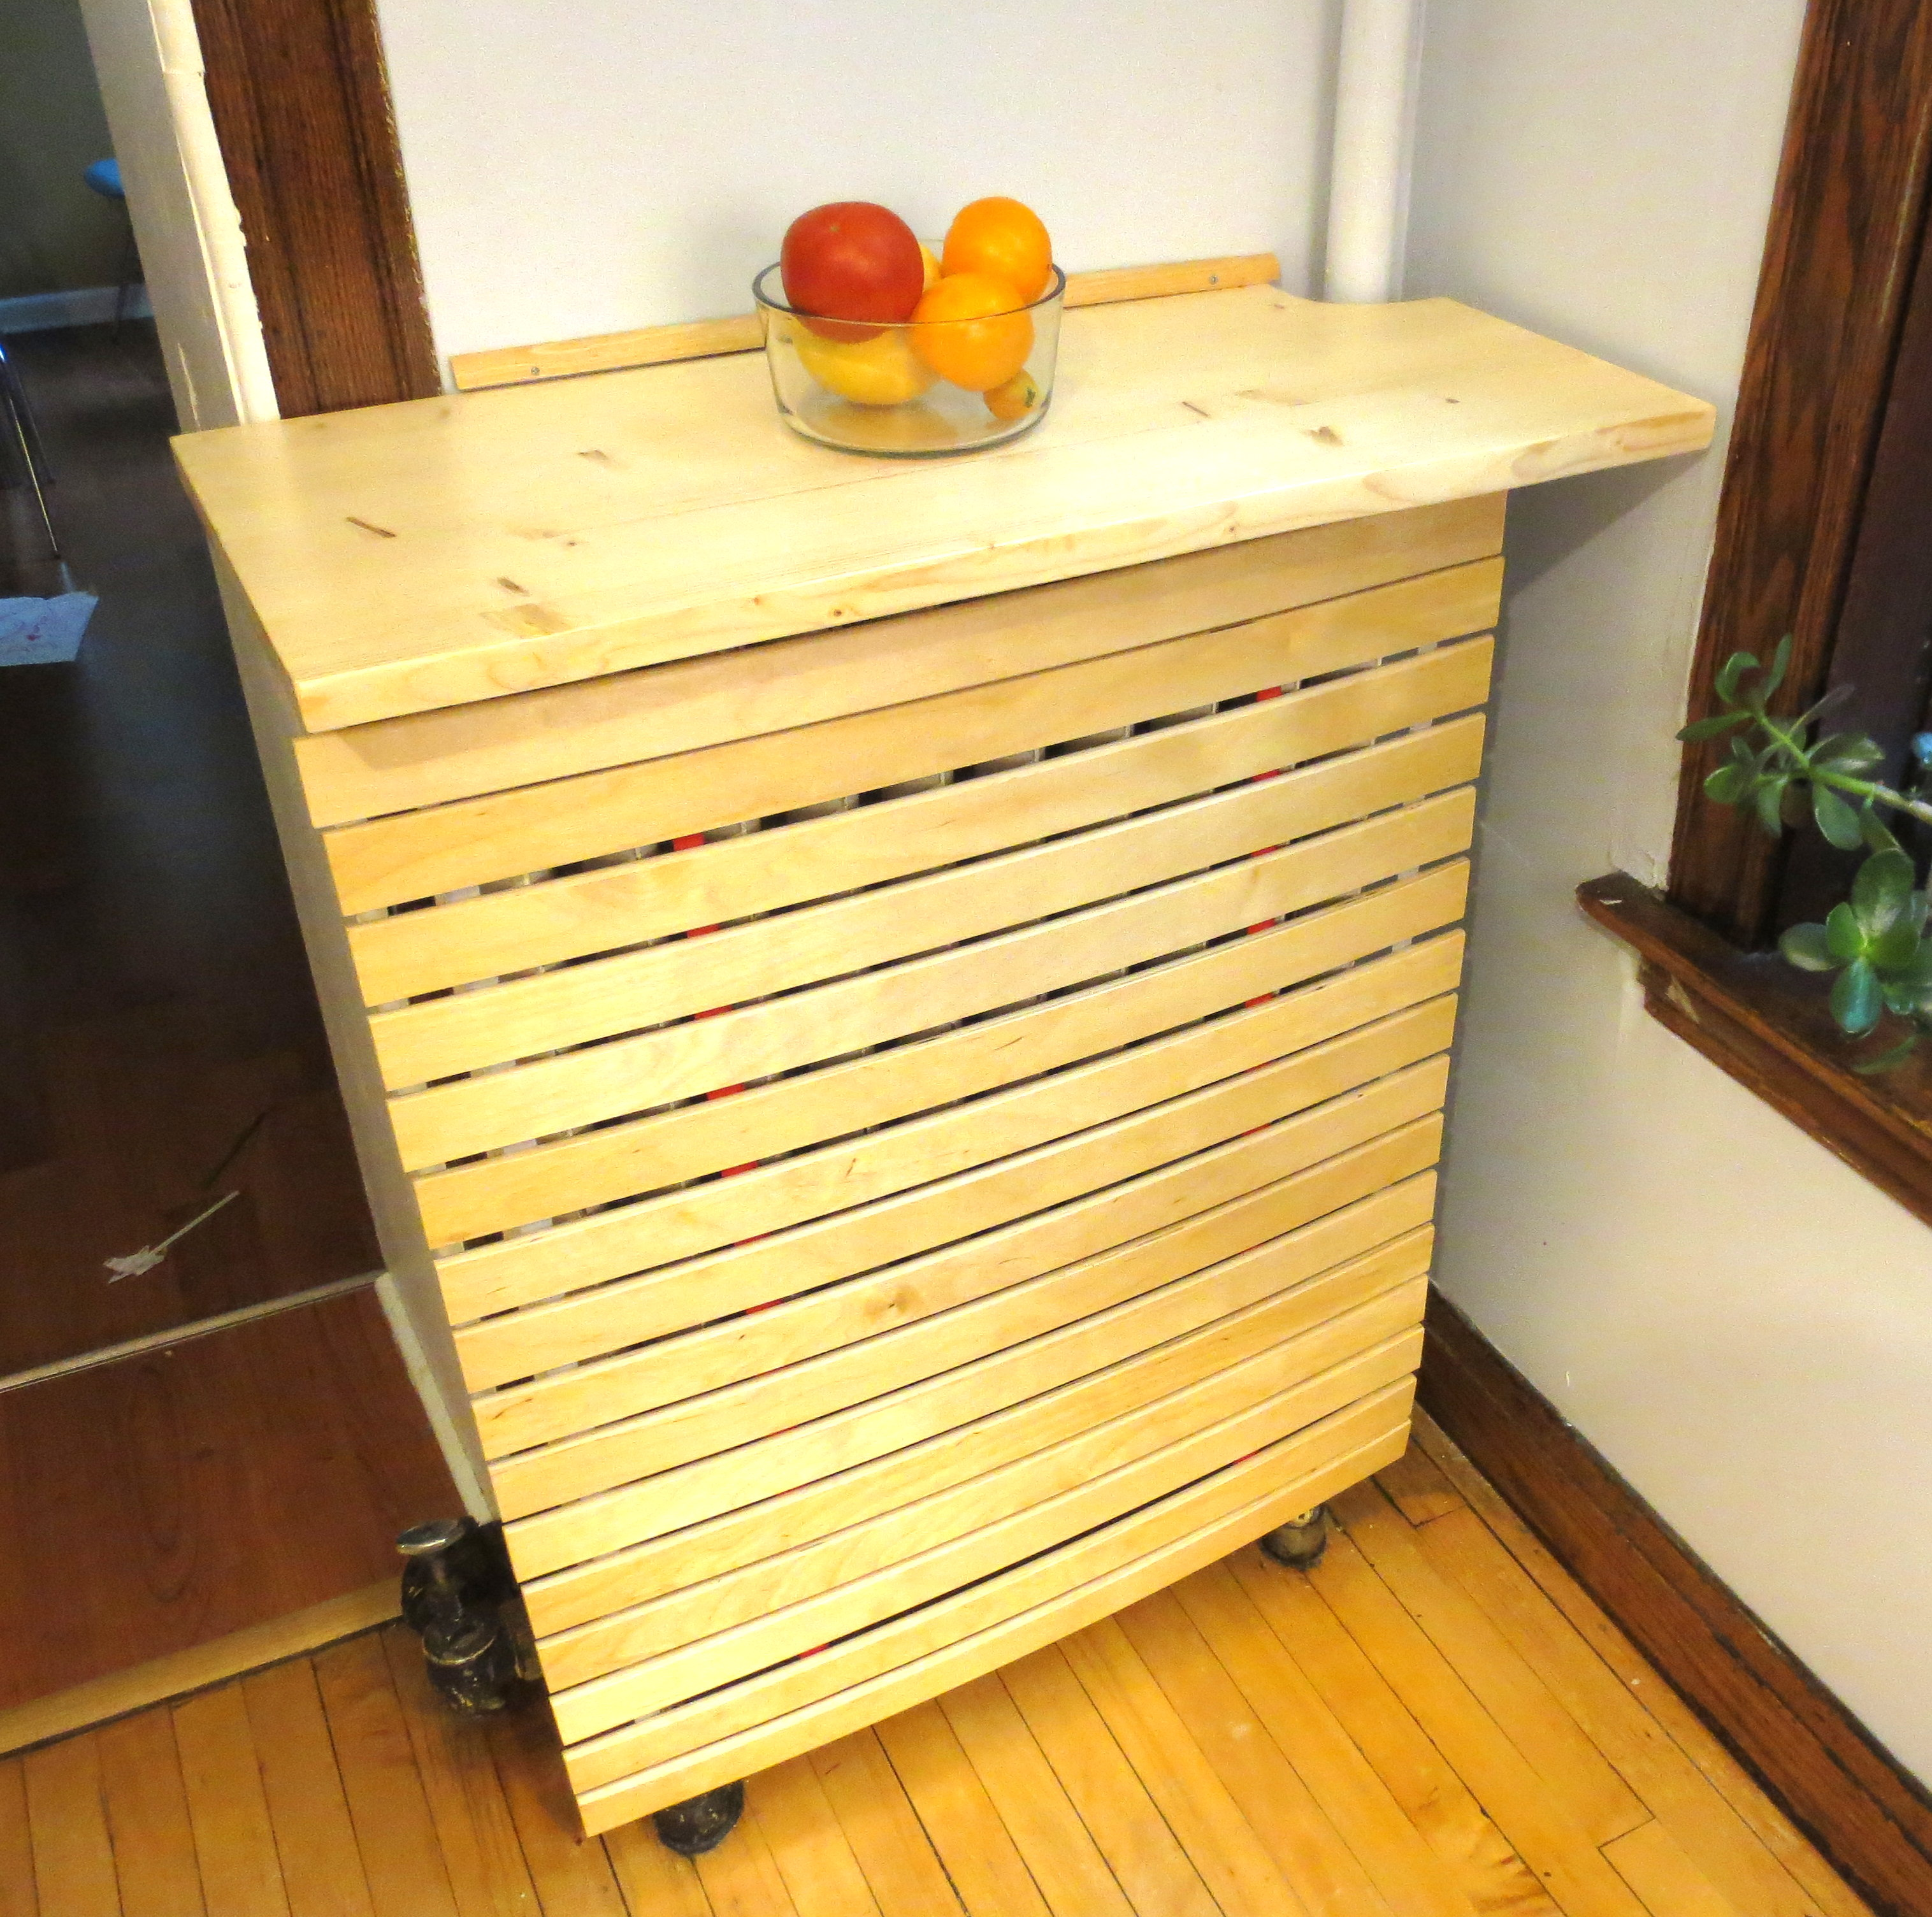 Rusty Victorian To Danish Modern Cover Your Radiator With Old Ikea Bed Slats Projectophile